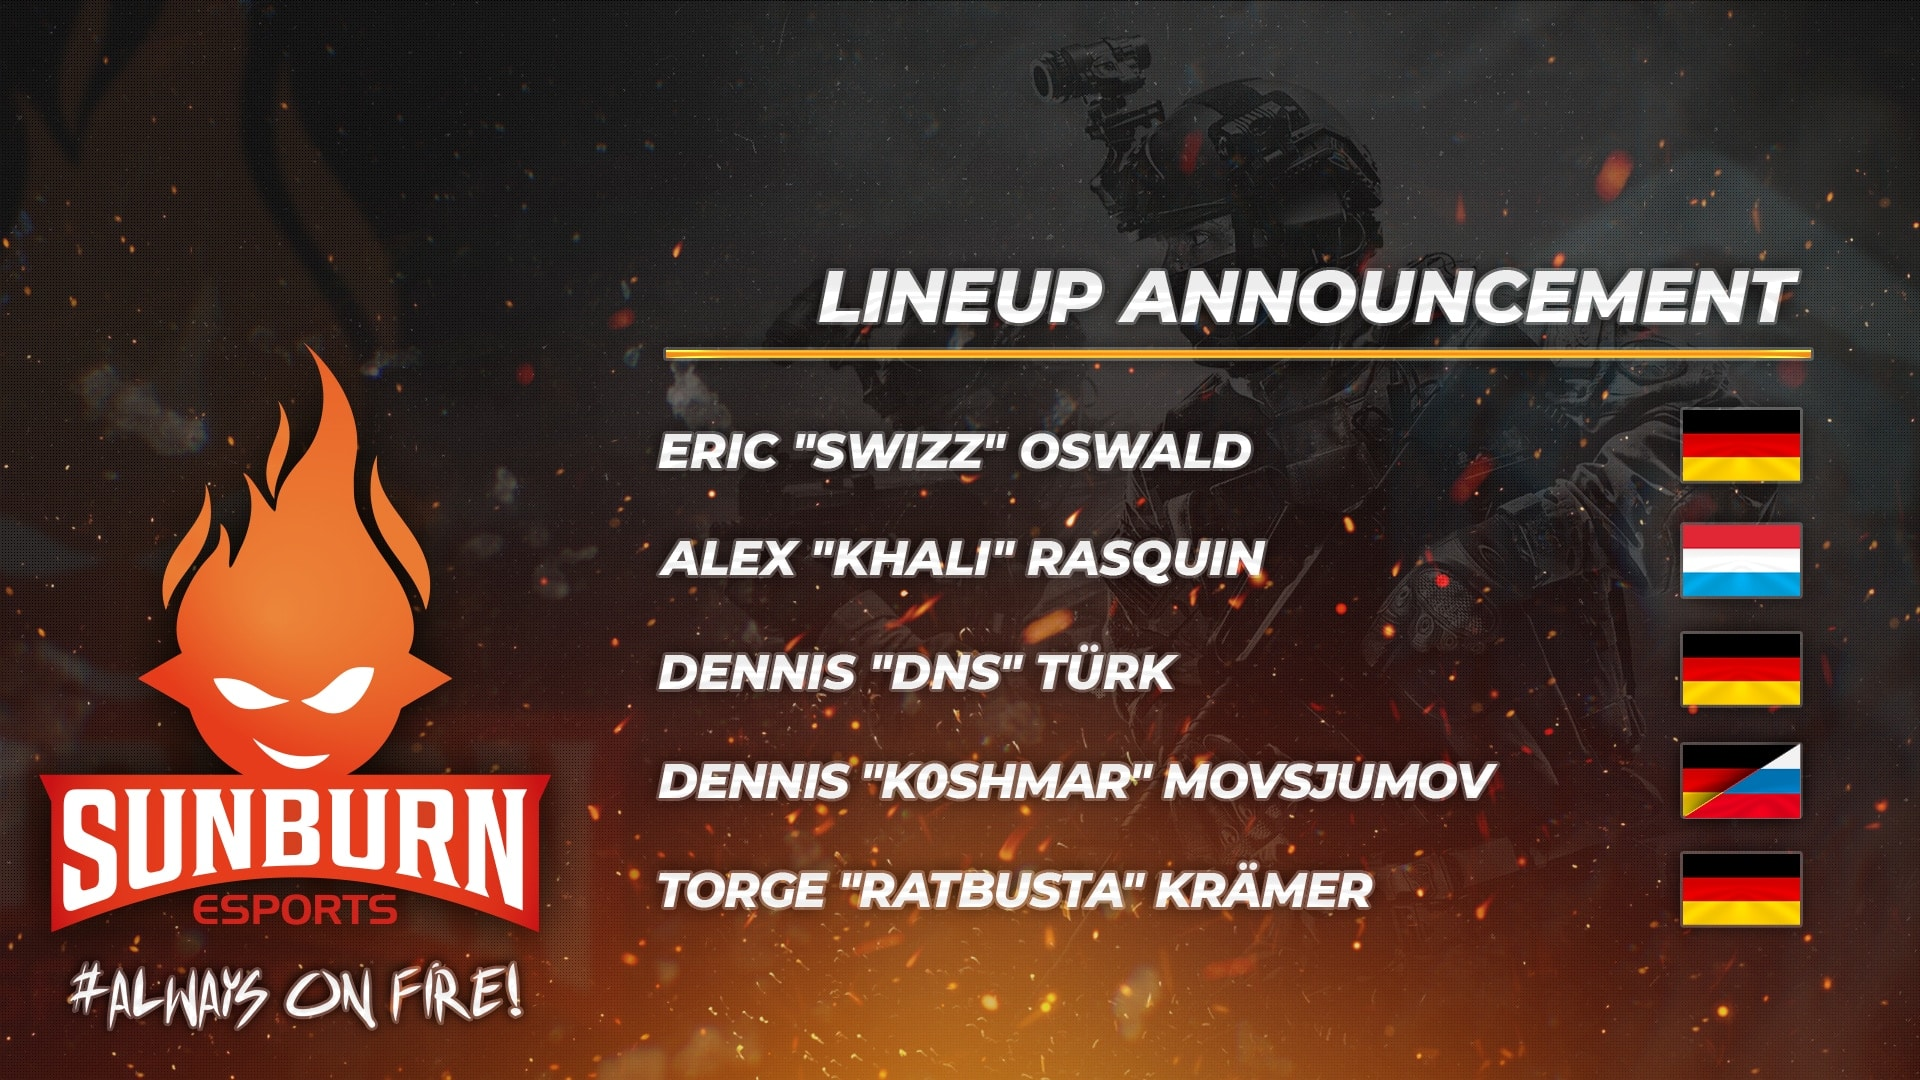 Lineup Announcement SUNBURN-CS:GO 04.01.2020